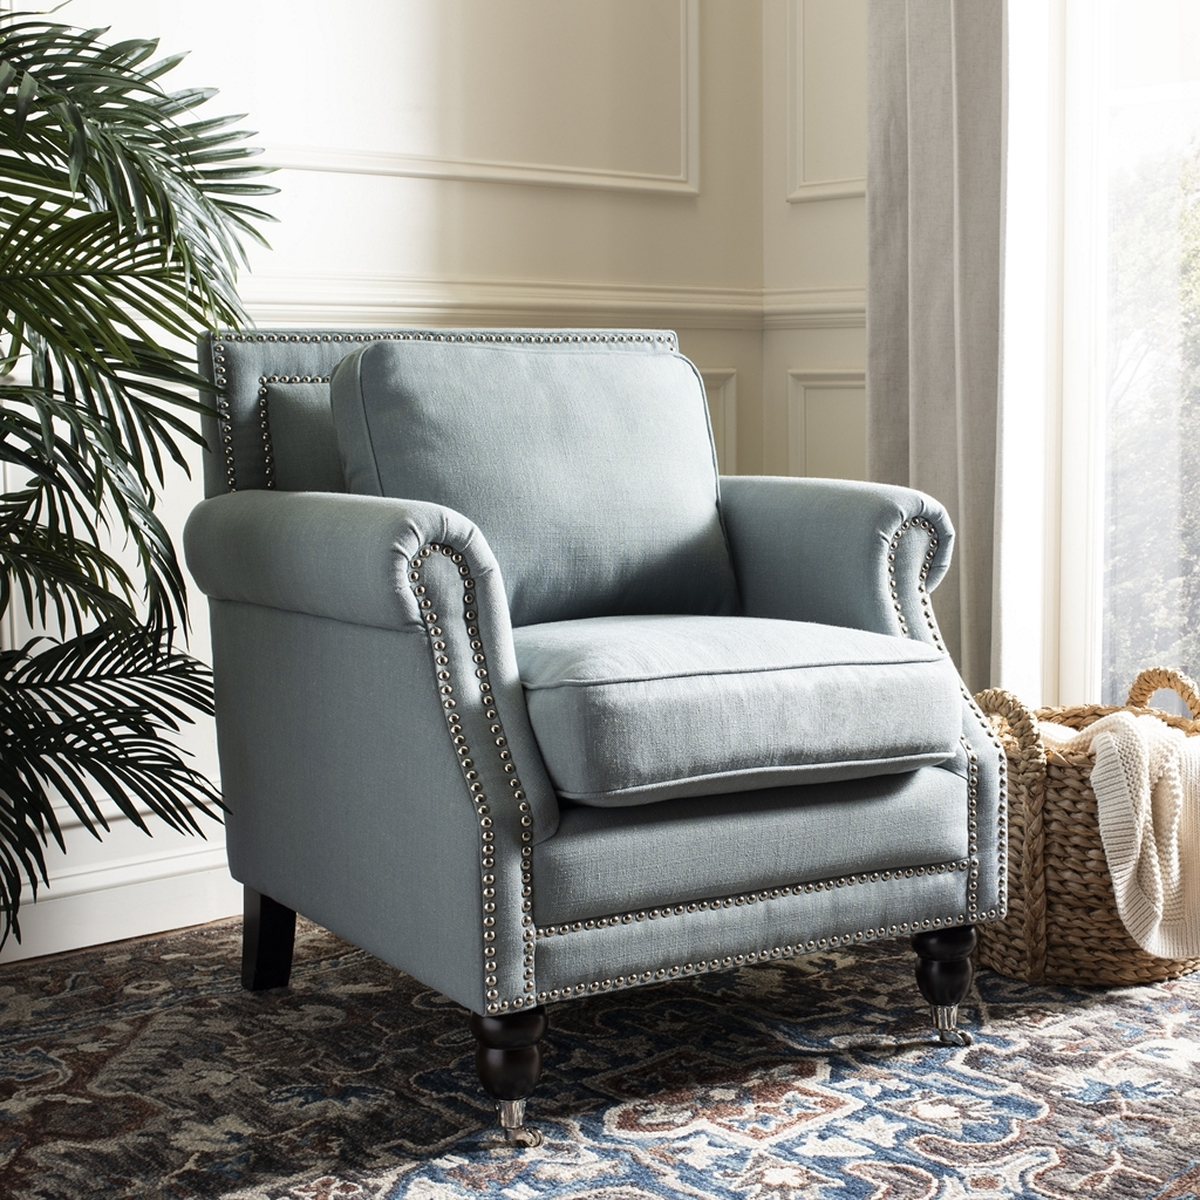 ACCENT CHAIRS. Color: Seaside Blue